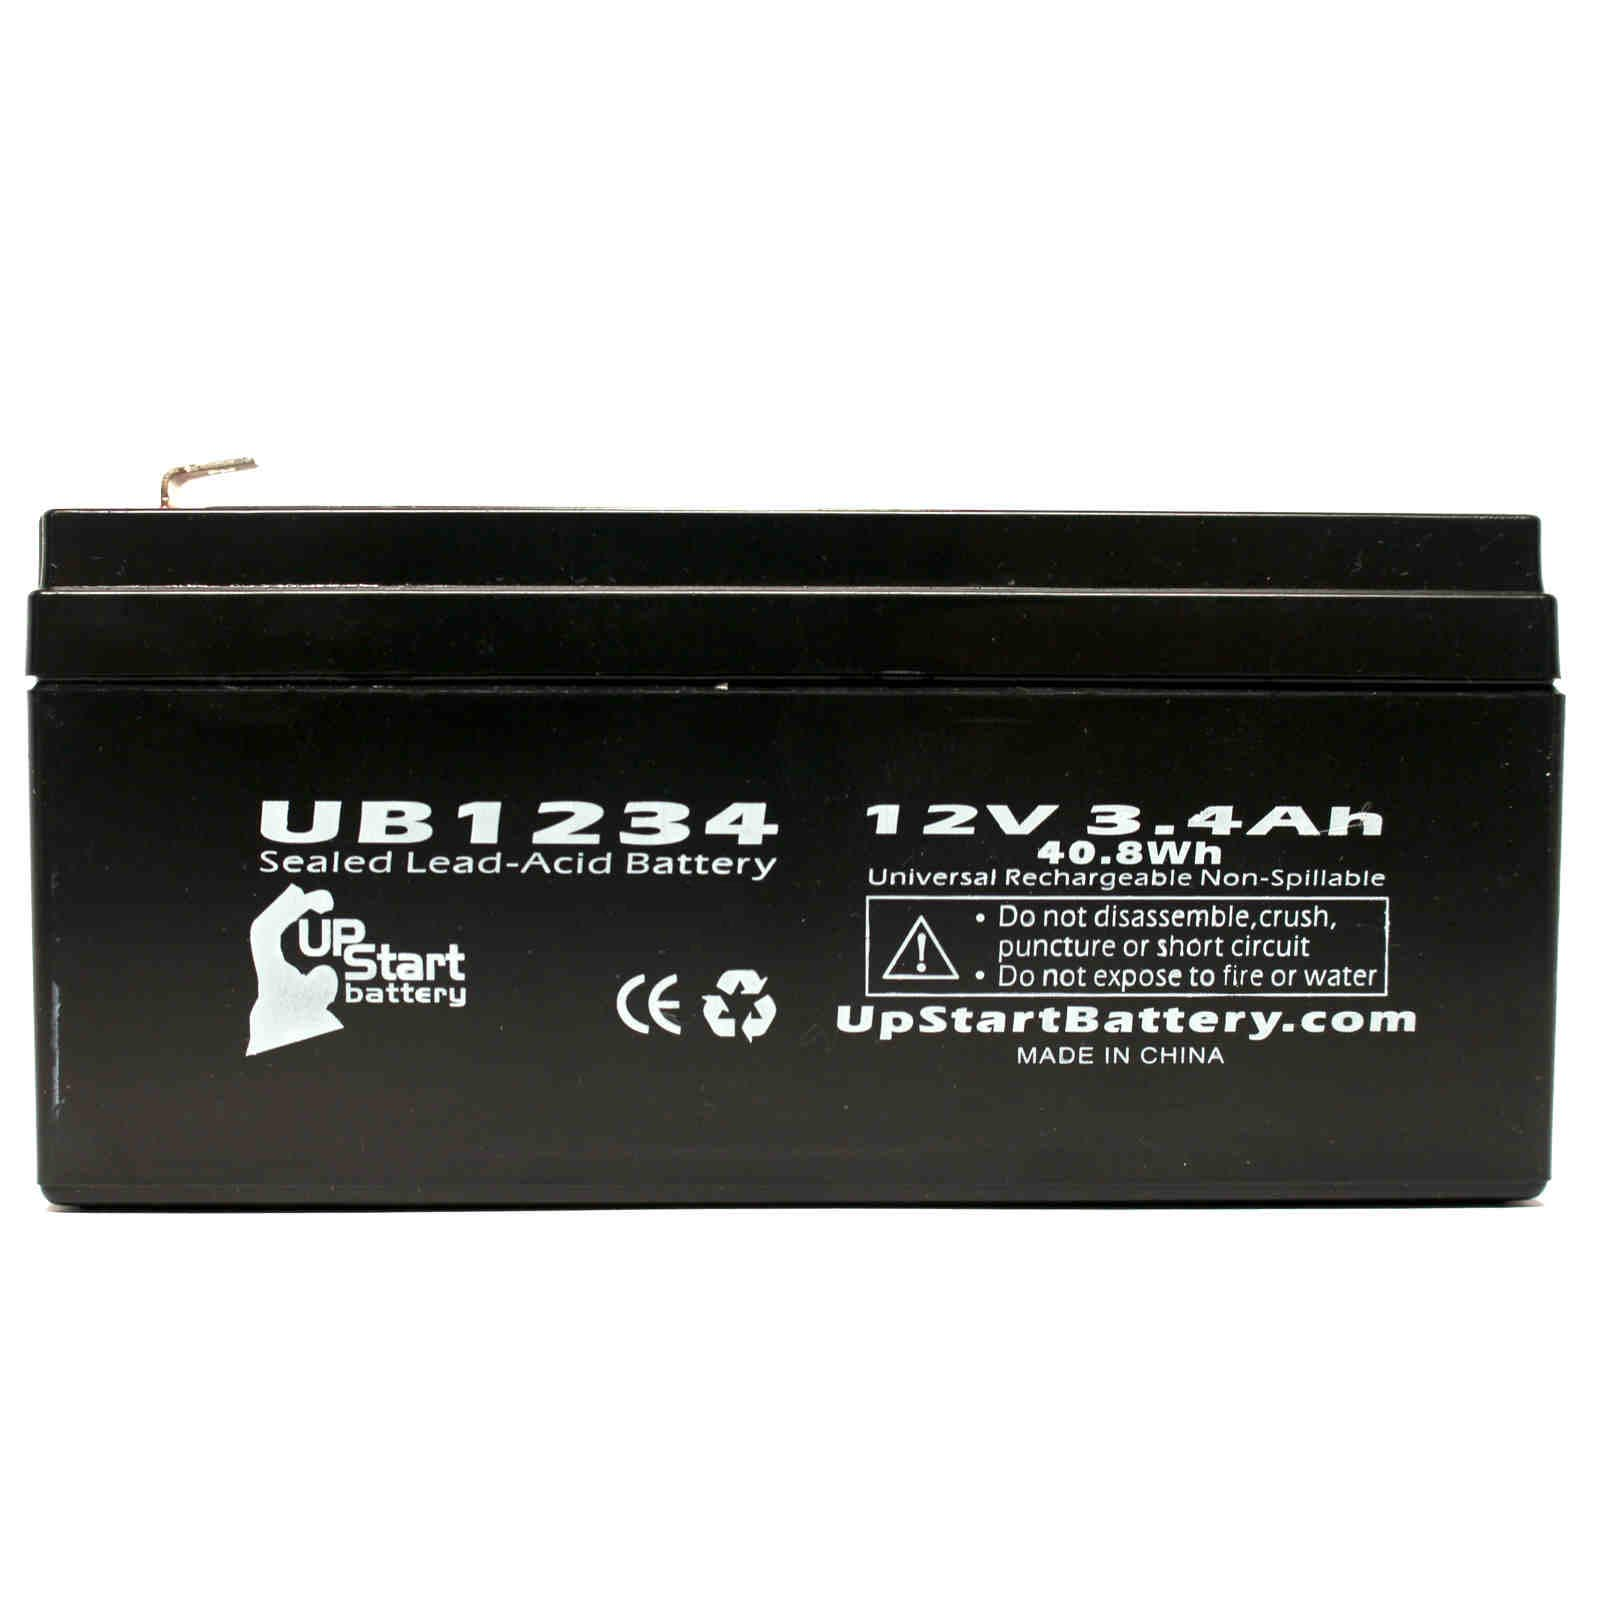 APC 35 Battery Replacement - UB1234 Universal Sealed Lead Acid Battery (12V, 3.4Ah, 3400mAh, F1 Terminal, AGM, SLA) - Includes TWO F1 to F2 Terminal Adapters - image 1 de 4